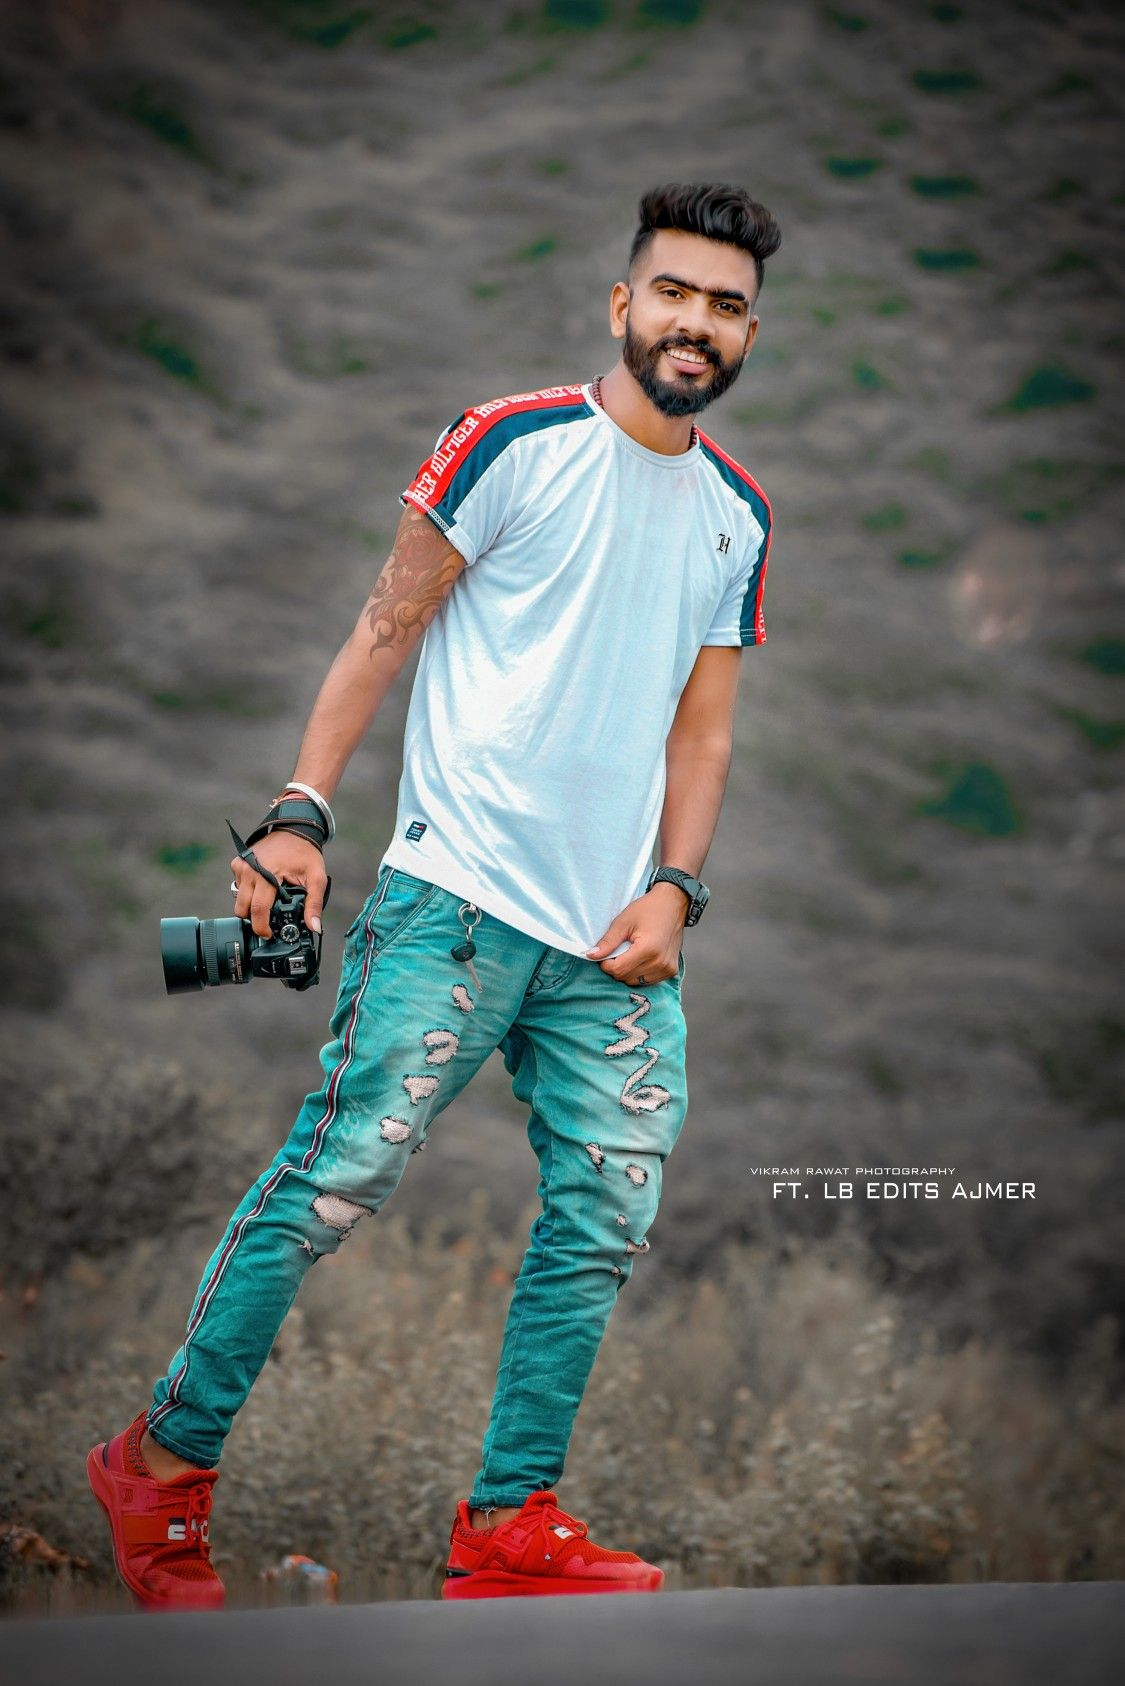 Vikram Rawat Photography Ft Lb Edits Ajmer All Type Photograph Black Background Images Black Background Photography Blue Background Images Download and use 10,000+ blurred background stock photos for free. black background photography